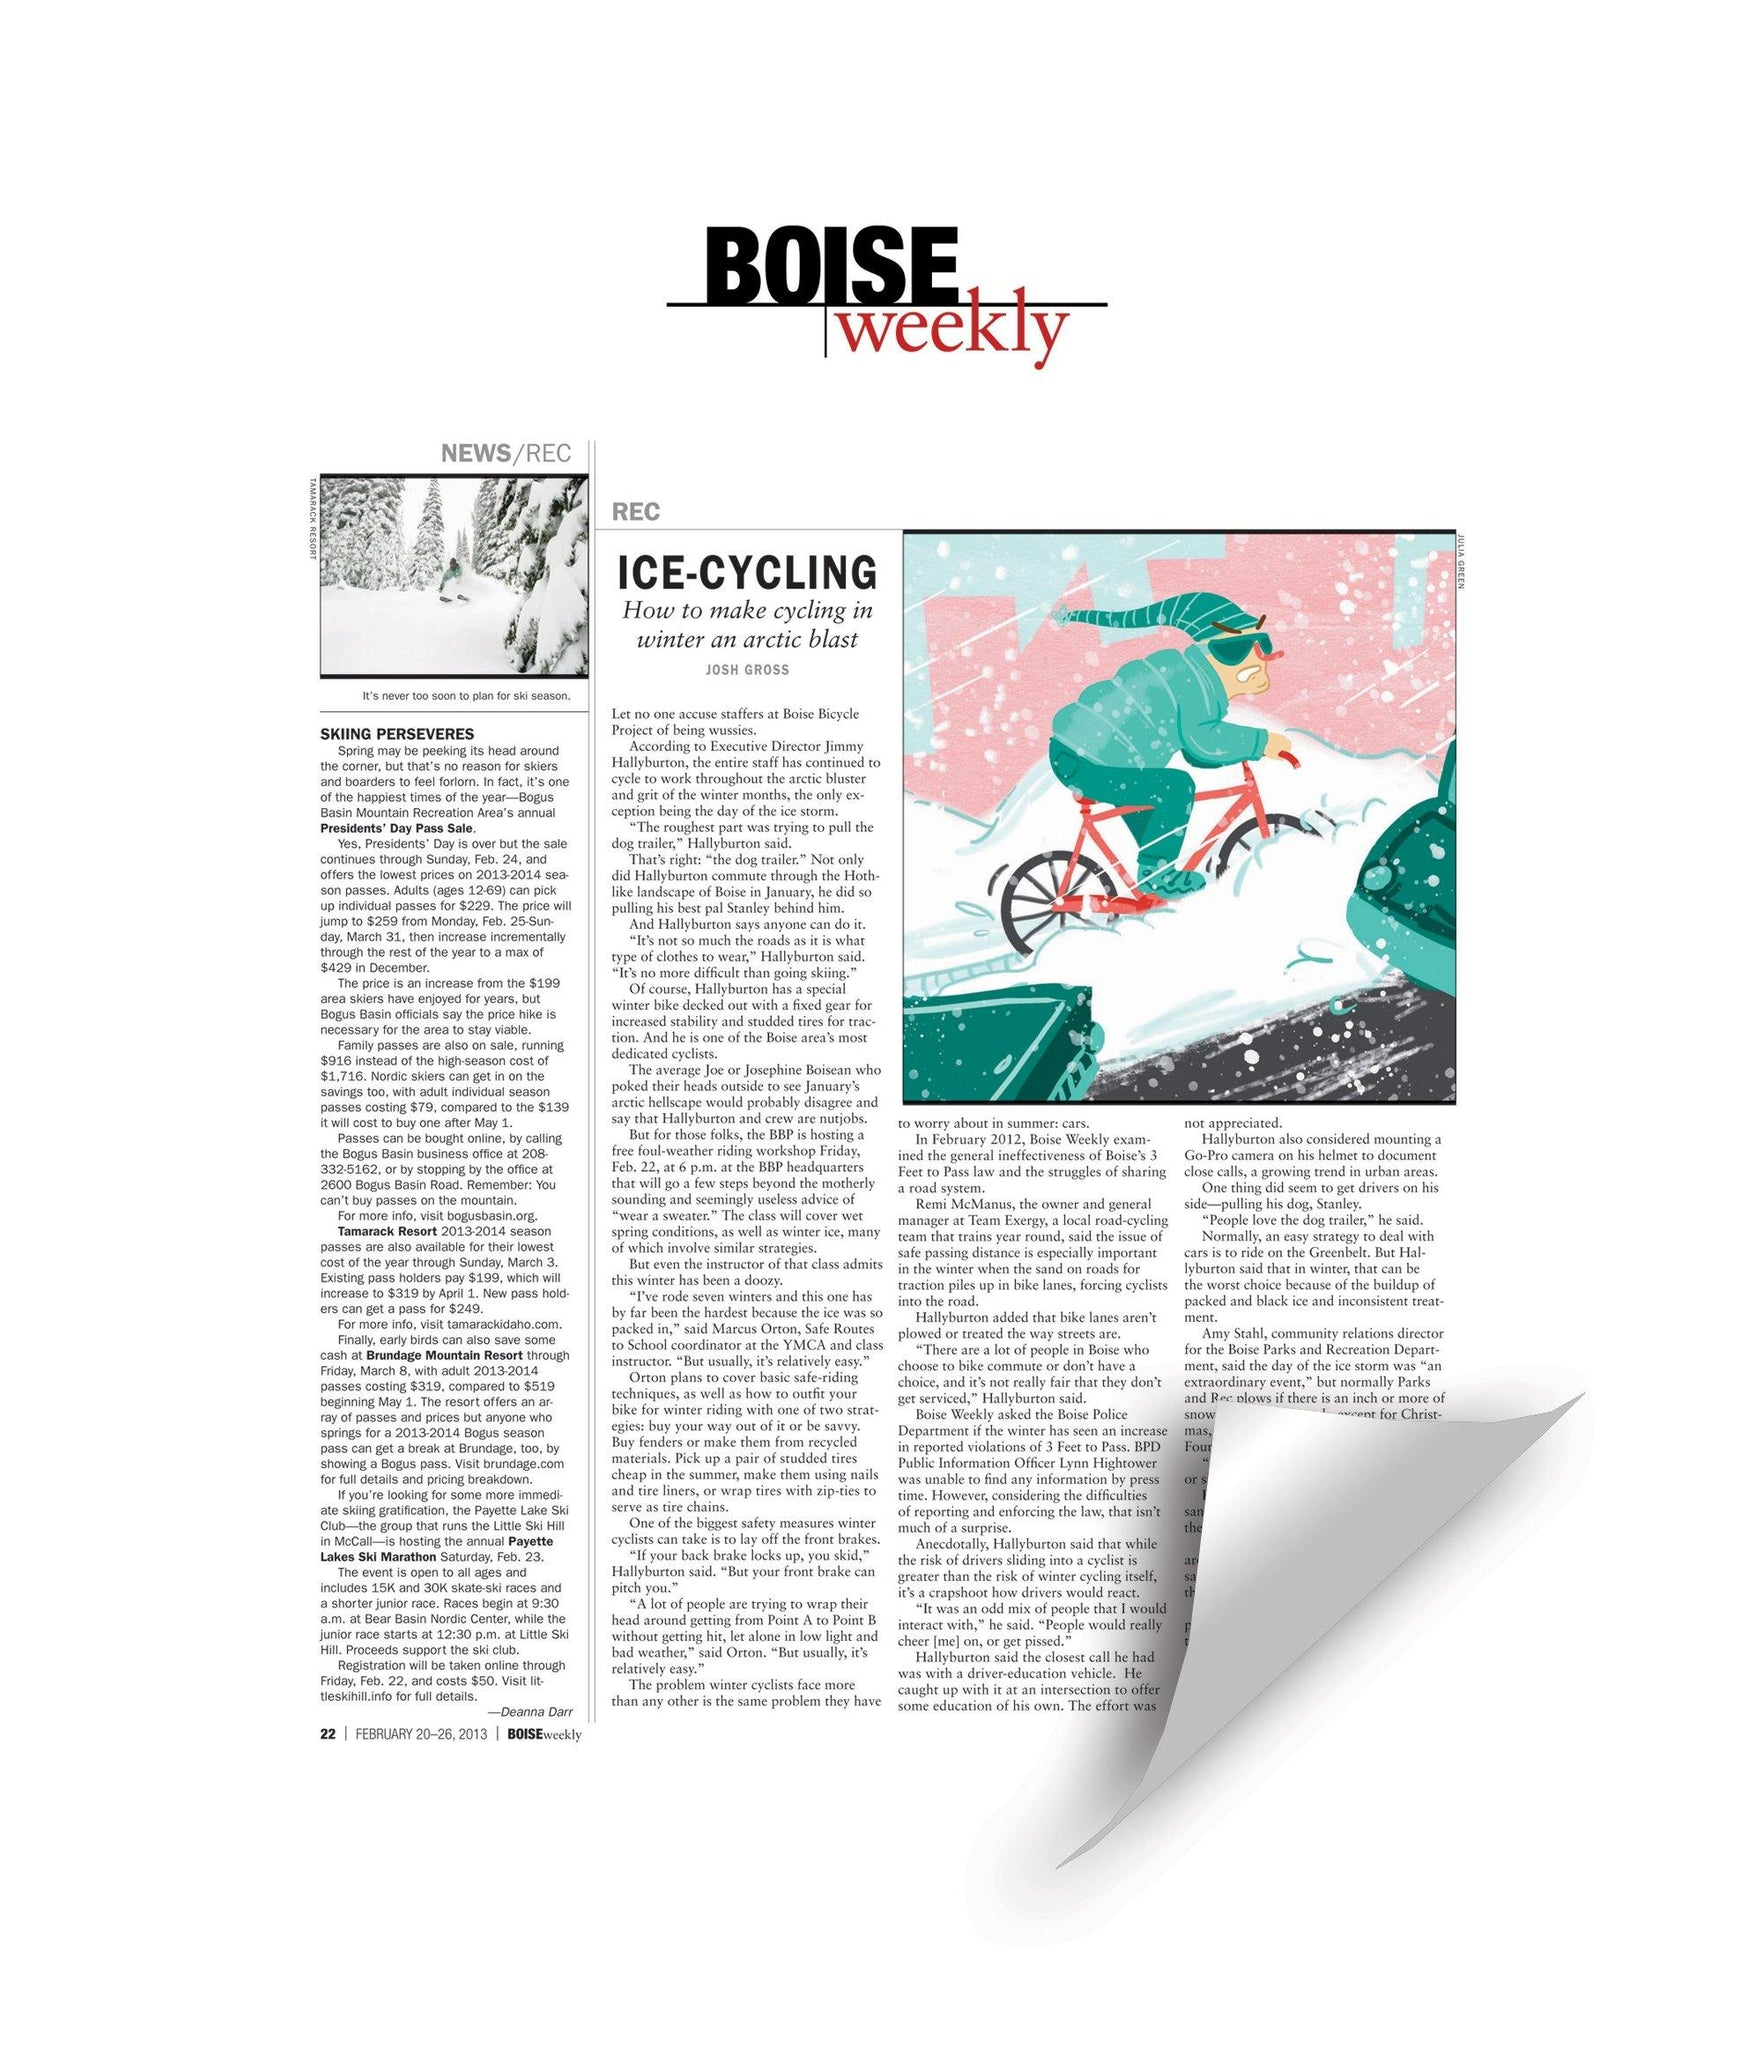 Boise Weekly Article Reprint